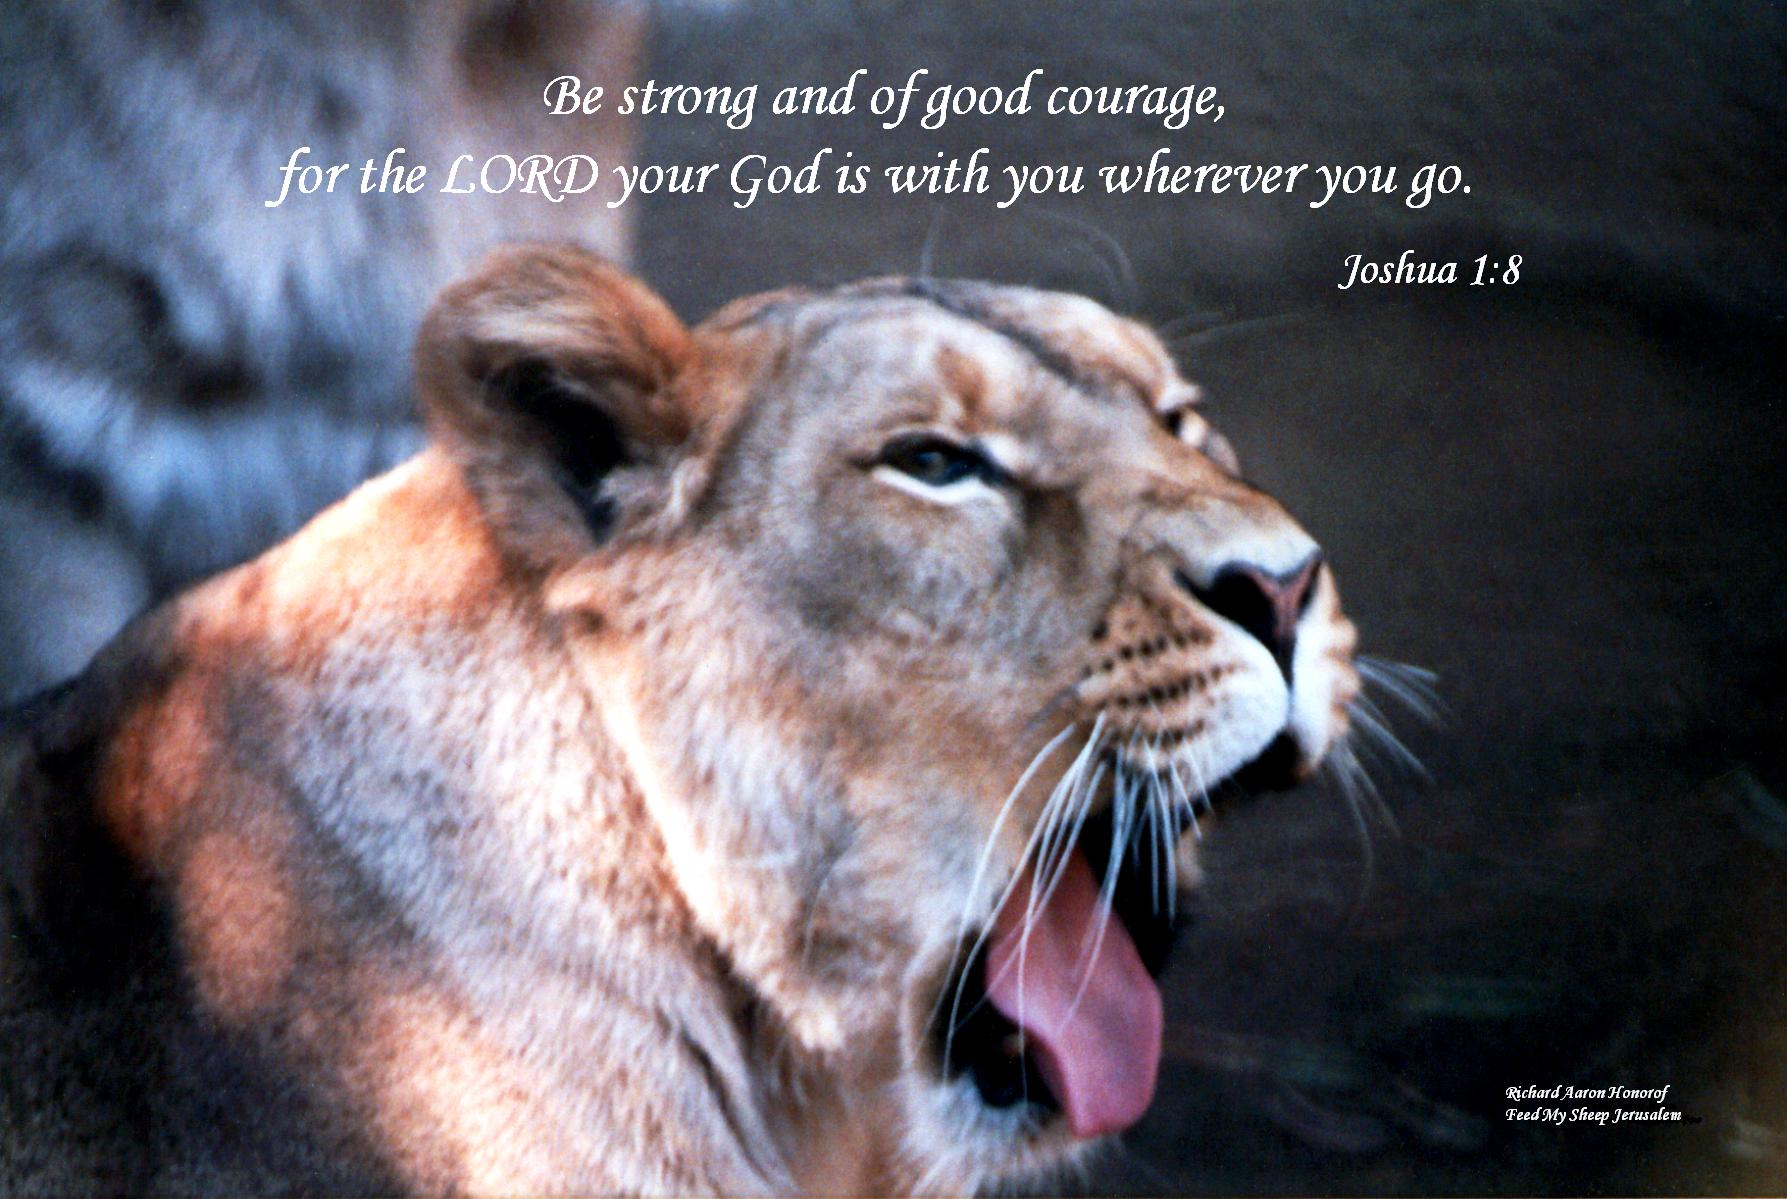 Lioness: Be strong and of good courage, for the LORD your God is